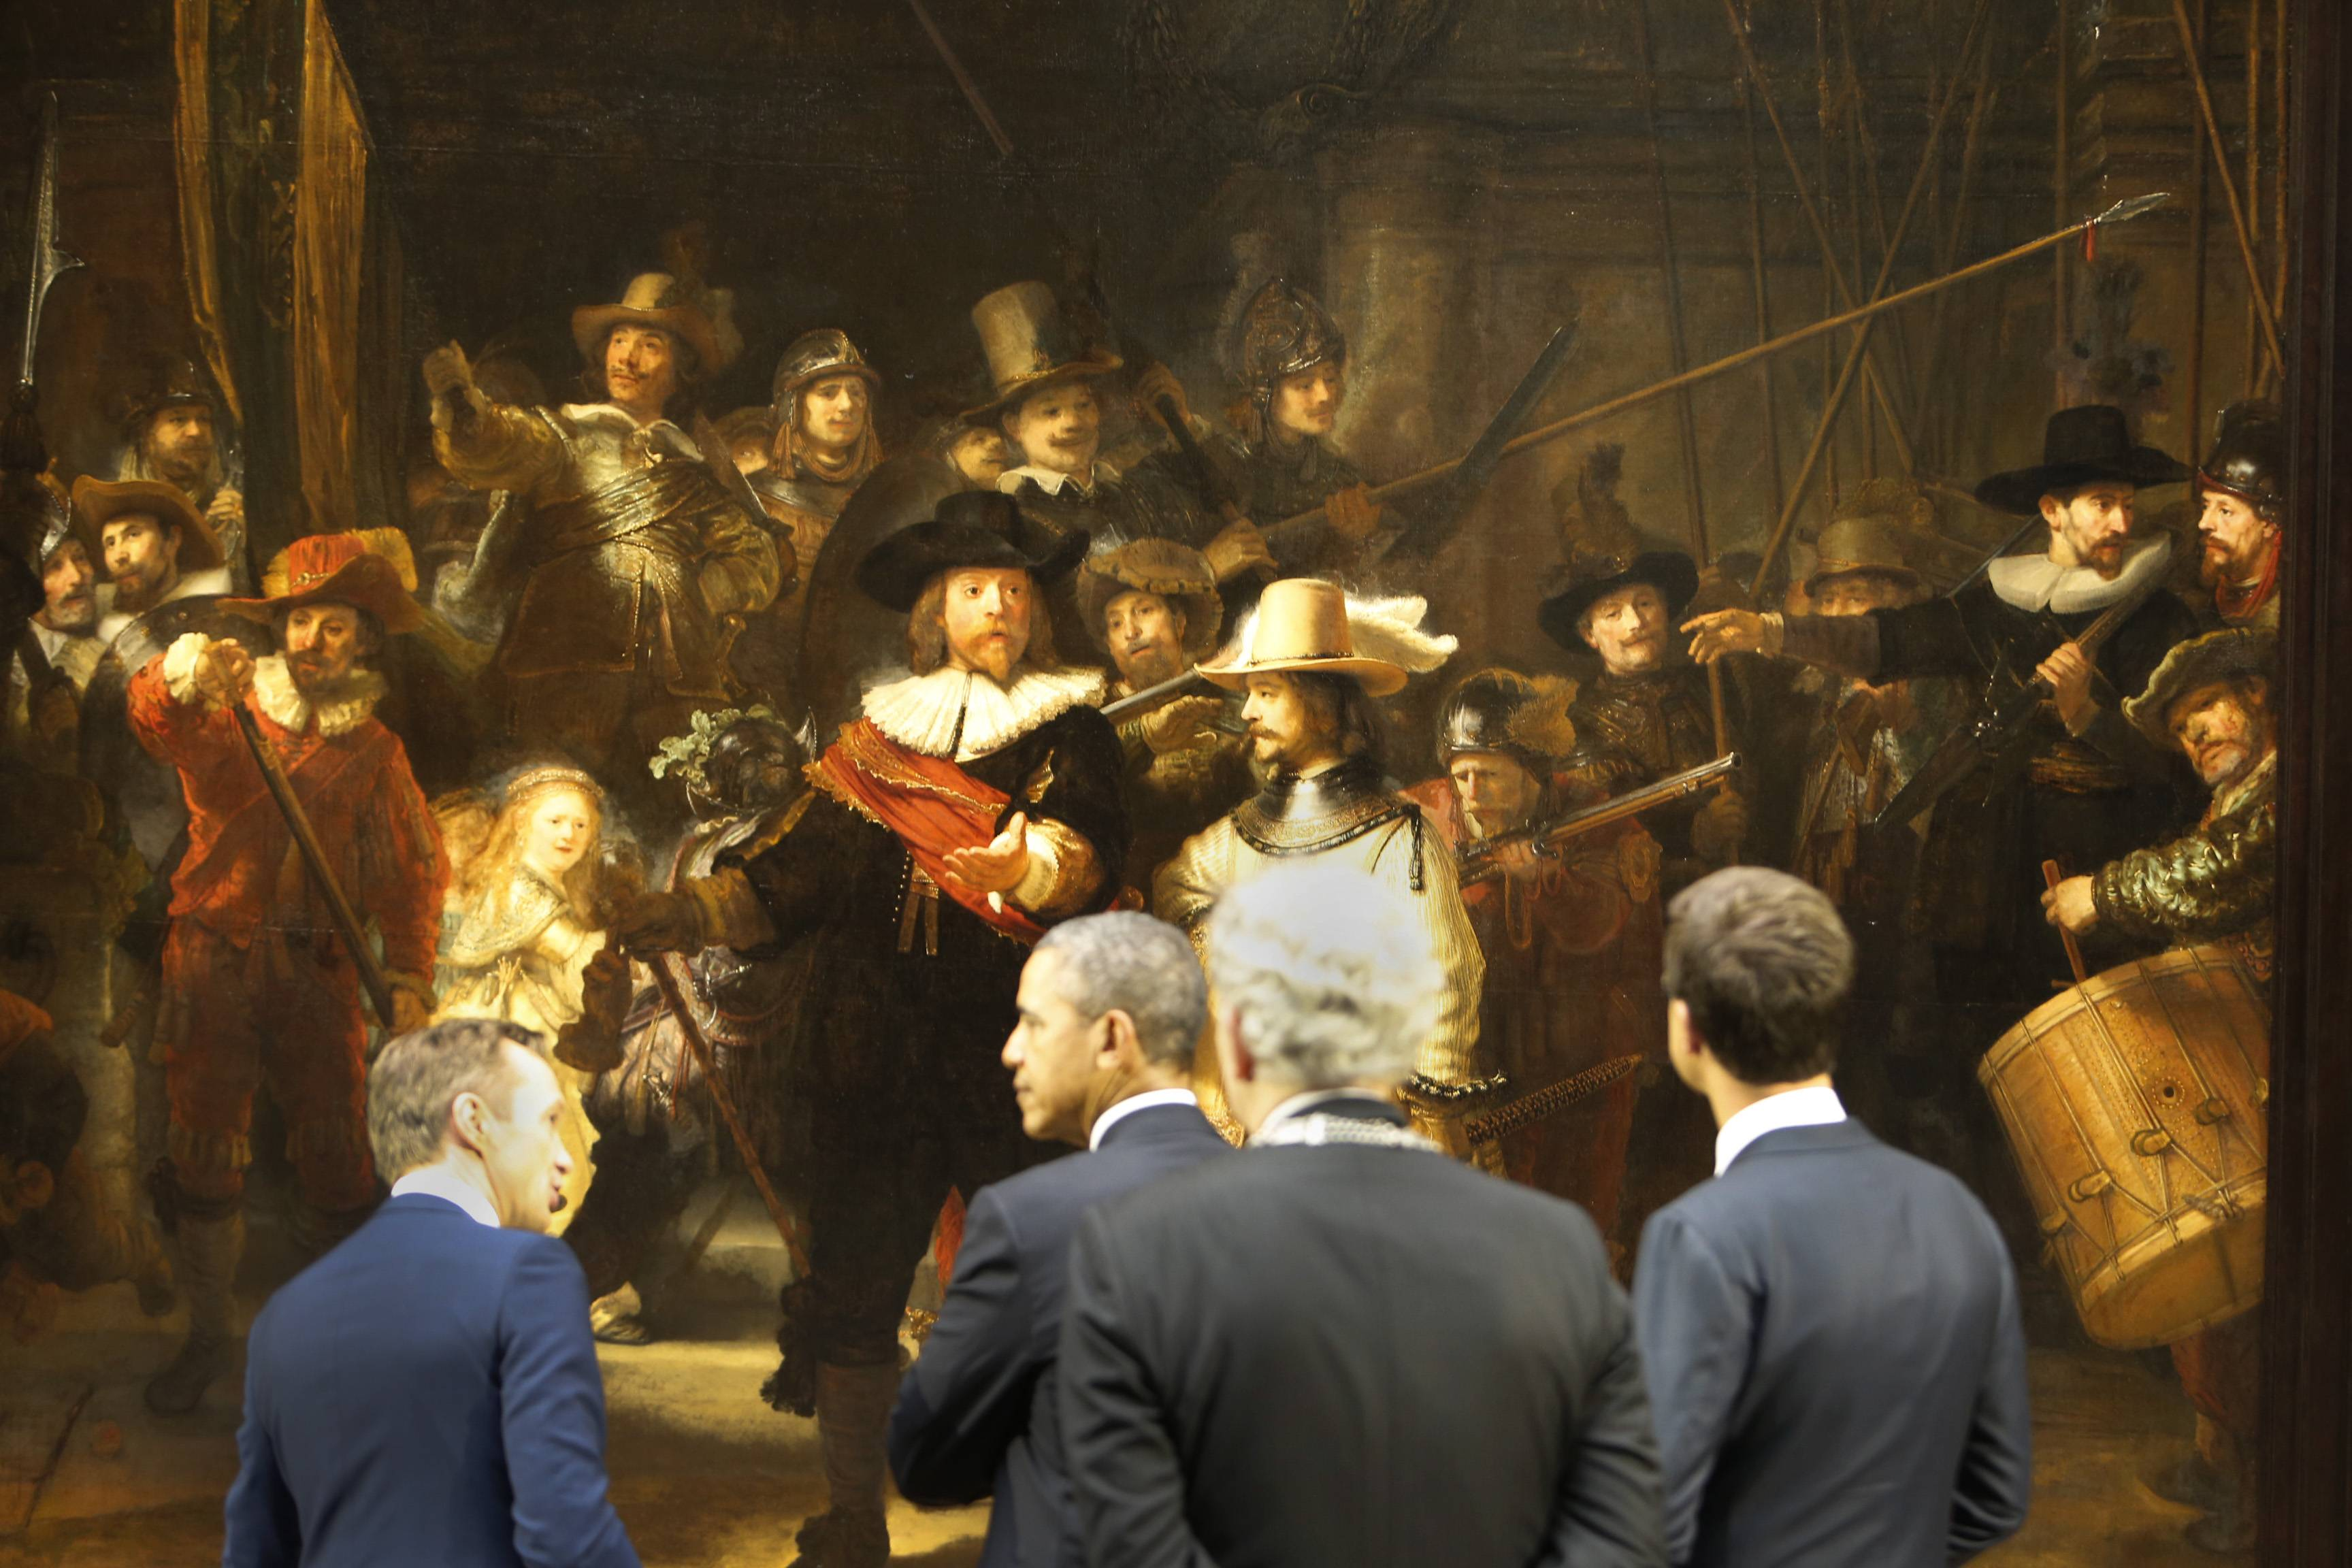 President Obama and Prime Minister Rutte of the Netherlands looking at Rembrandt's Nightwatch.